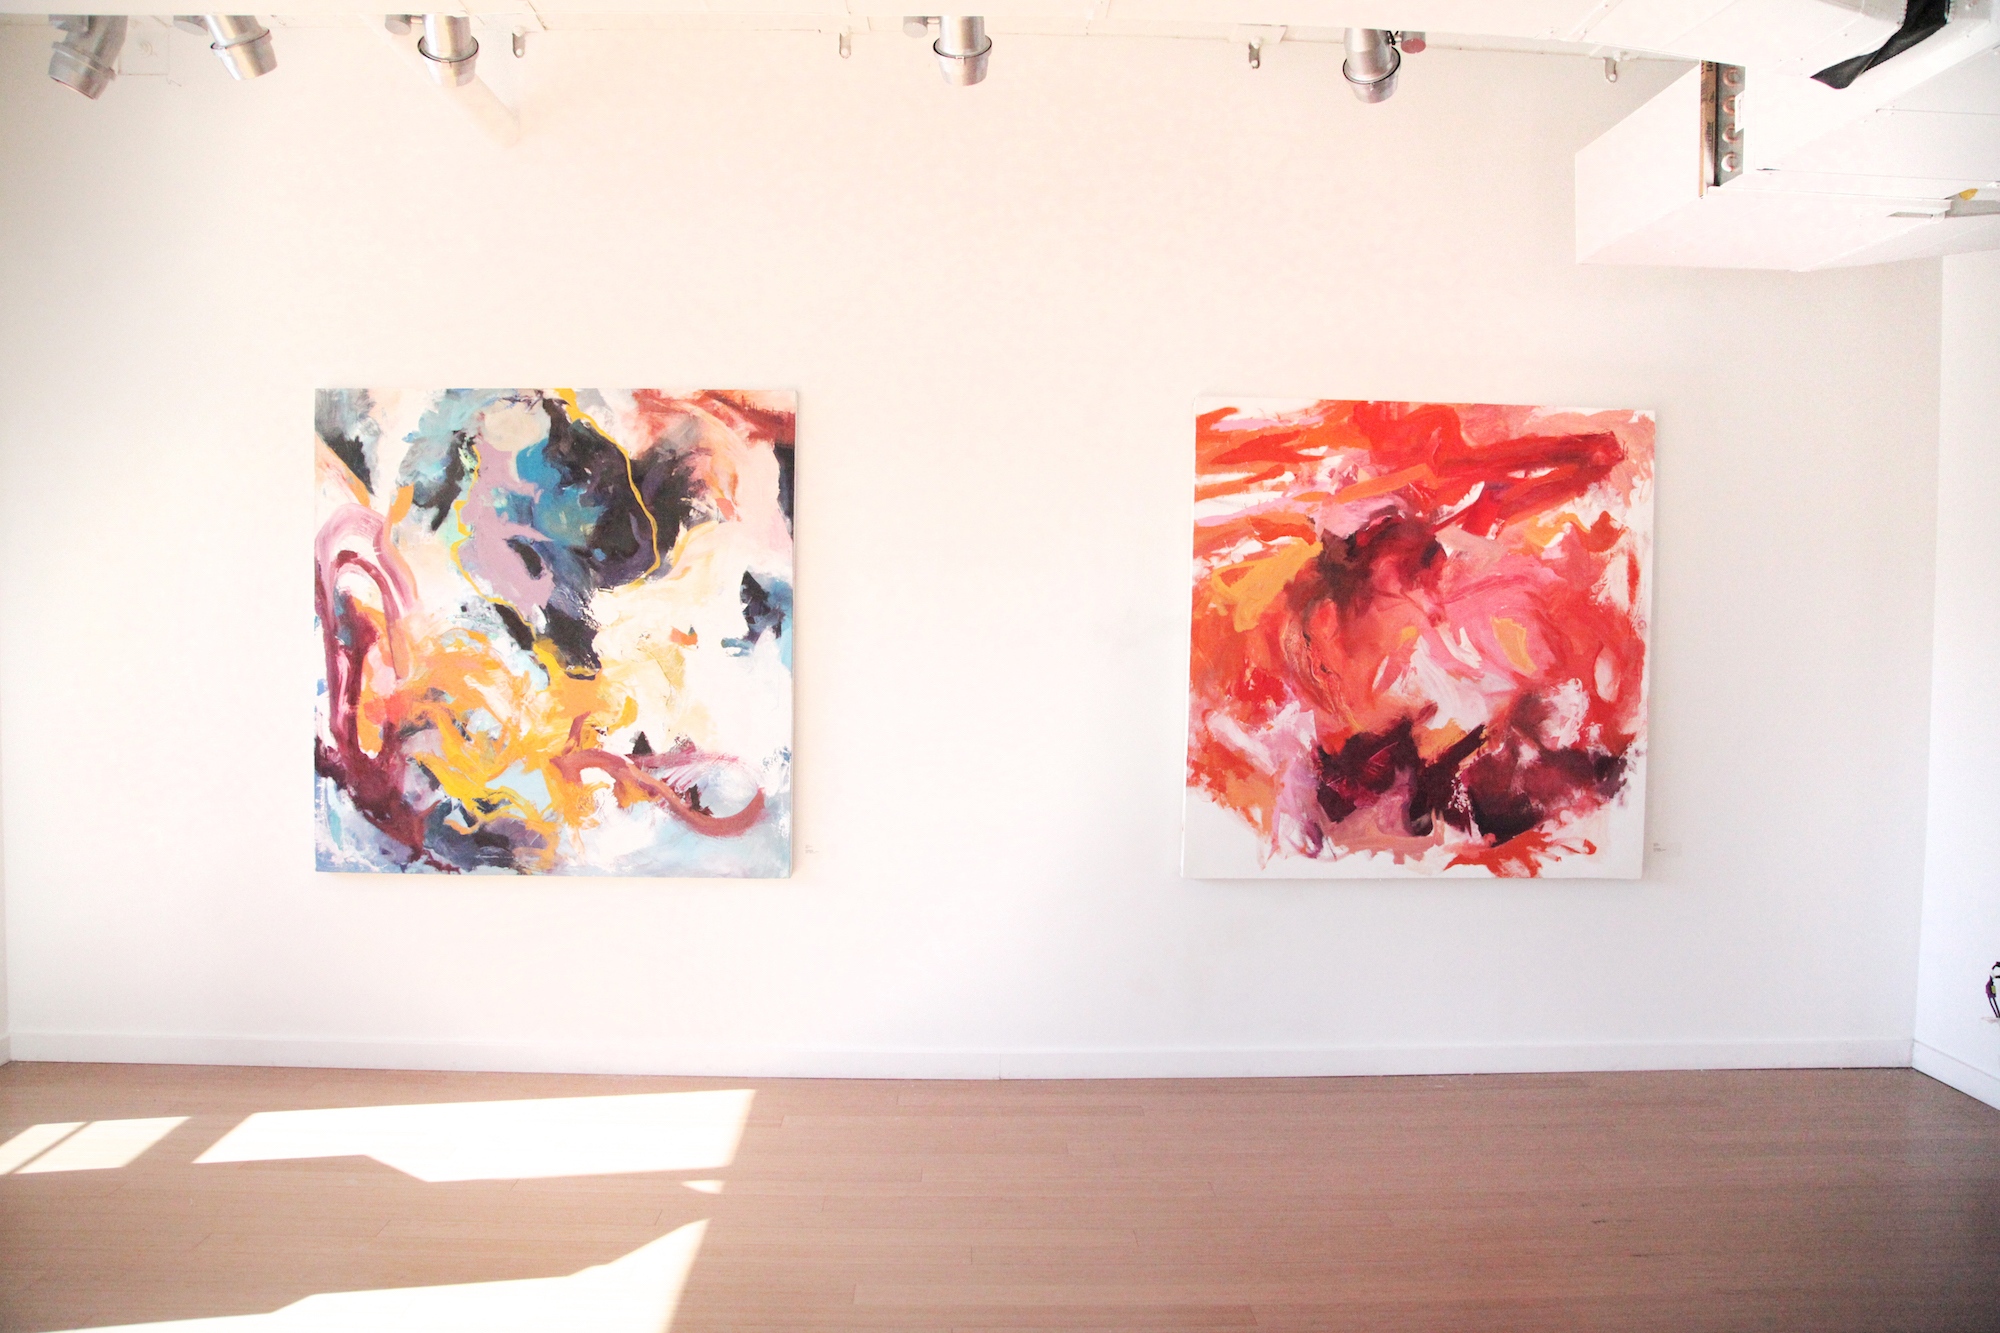 Featured Carly Sheehan paintings. / Geena Matuson's (@geenamatuson) TransFIREmation Gallery Show & Installation in the MassArt Student Life Gallery in Boston, MA, US.